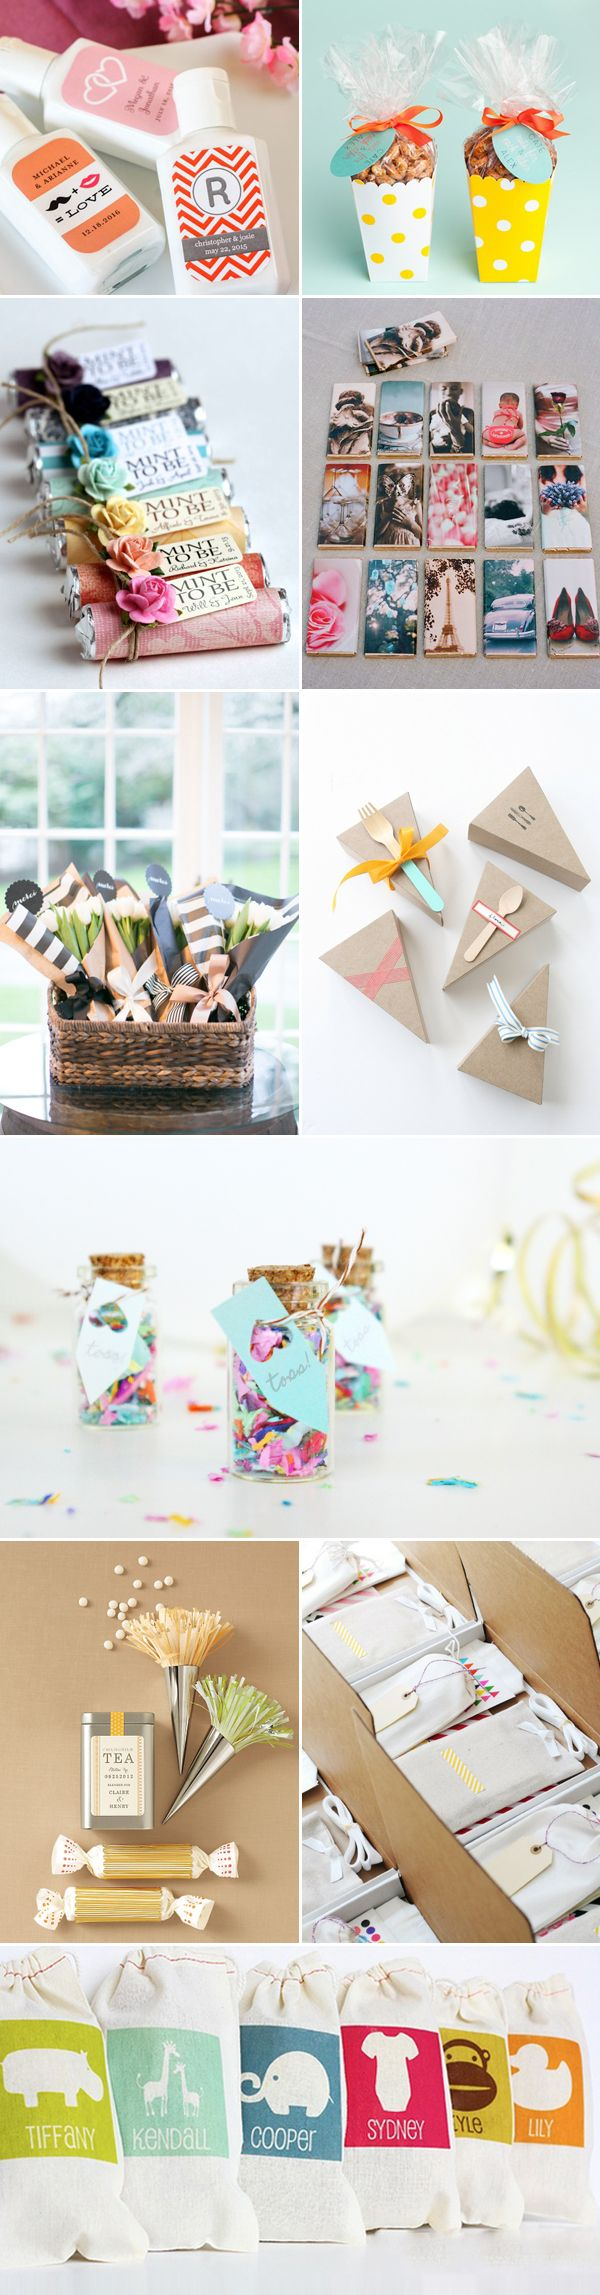 148 best Wedding Favors images on Pinterest | Wedding souvenir ...